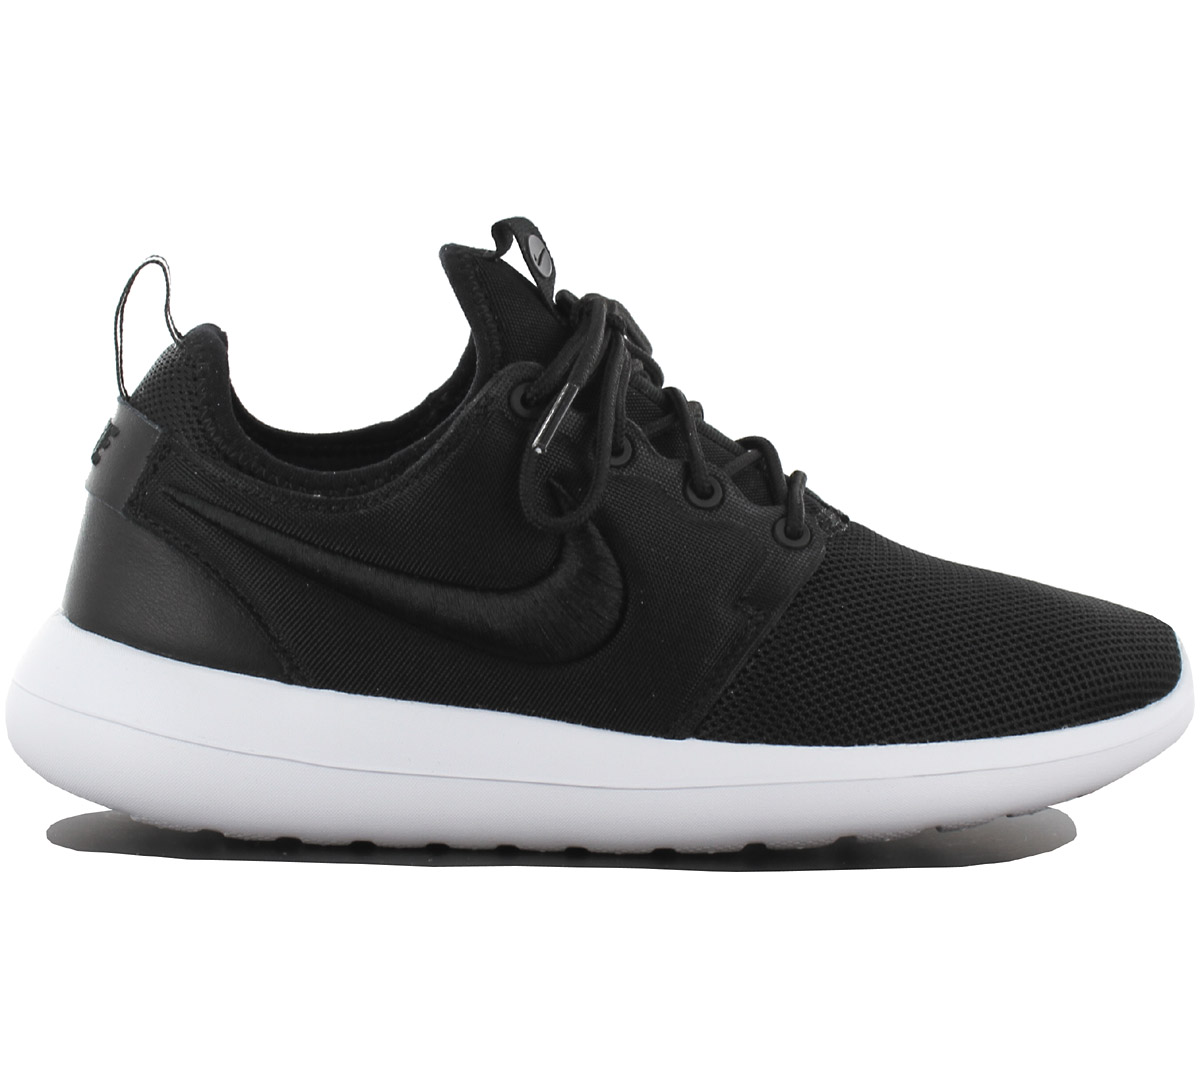 Details about Nike Wmns Roshe Two Br Breathe Women's Sneaker Shoes Black One Run 896445 001